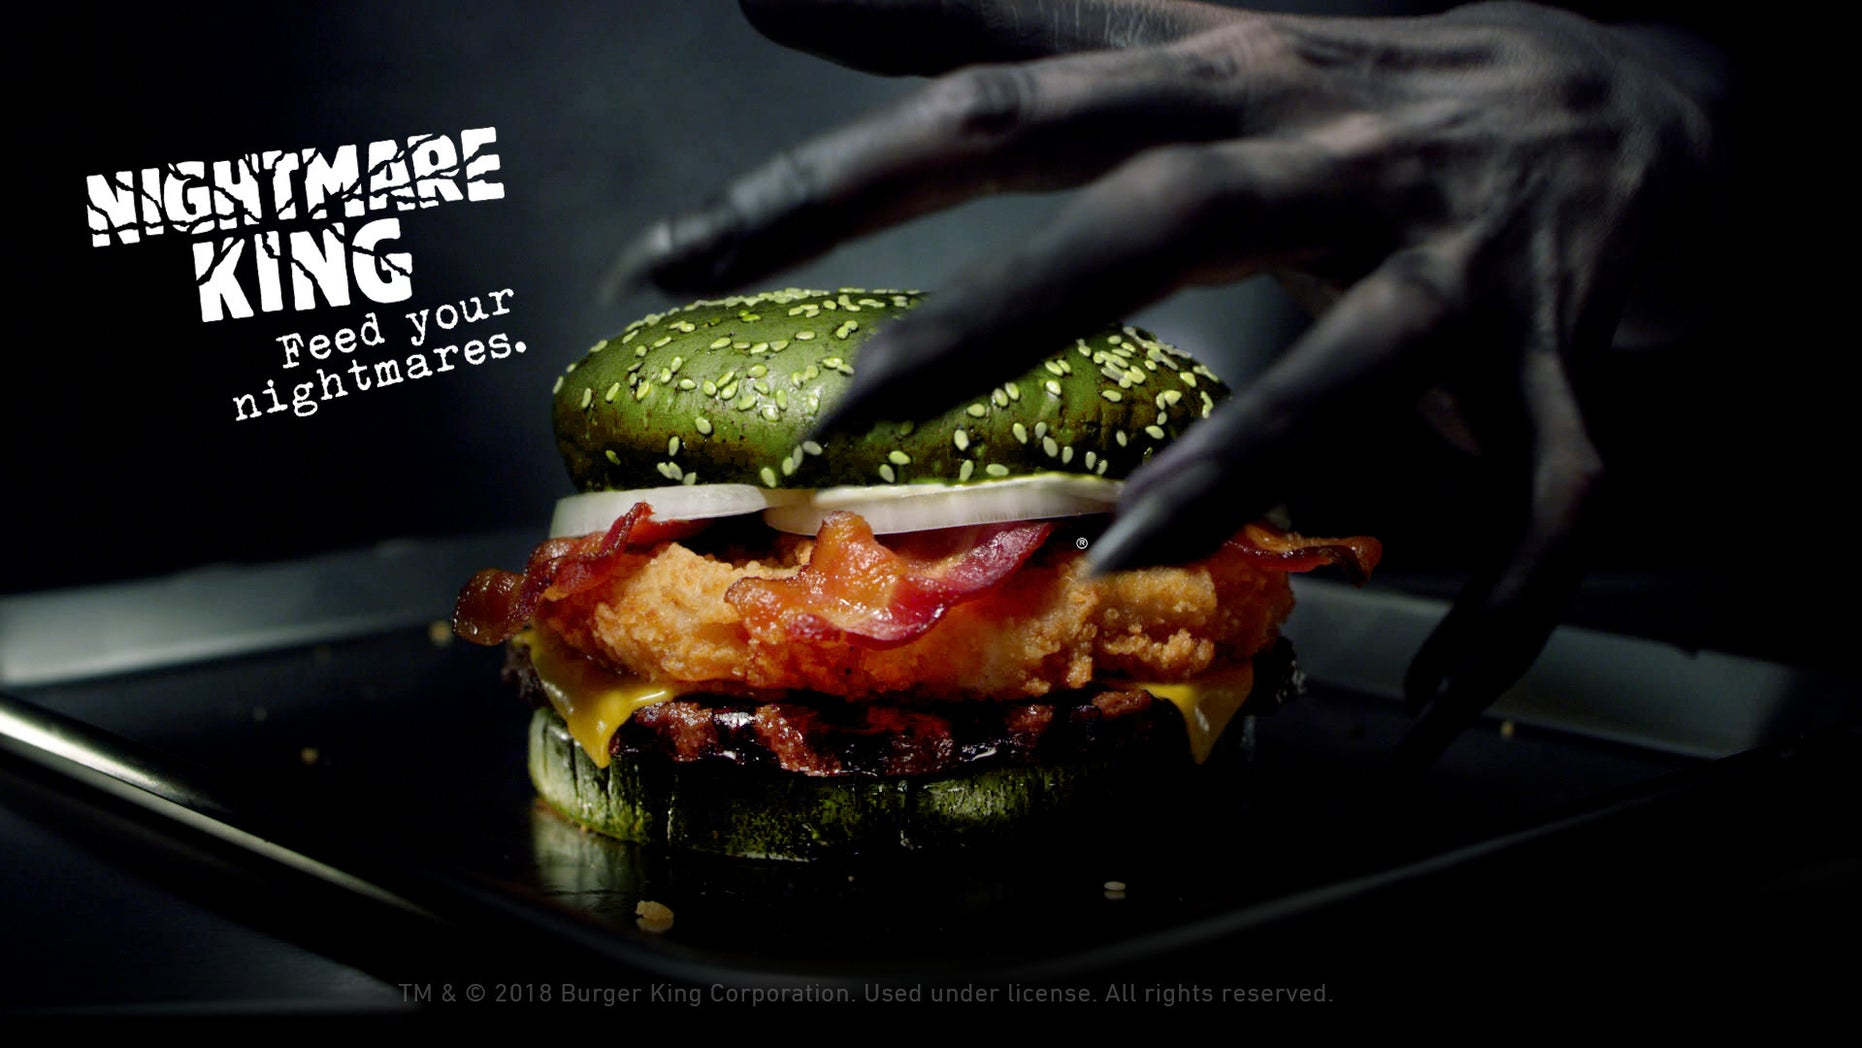 Burger King Says Its Halloween Burger Causes Actual Nightmares